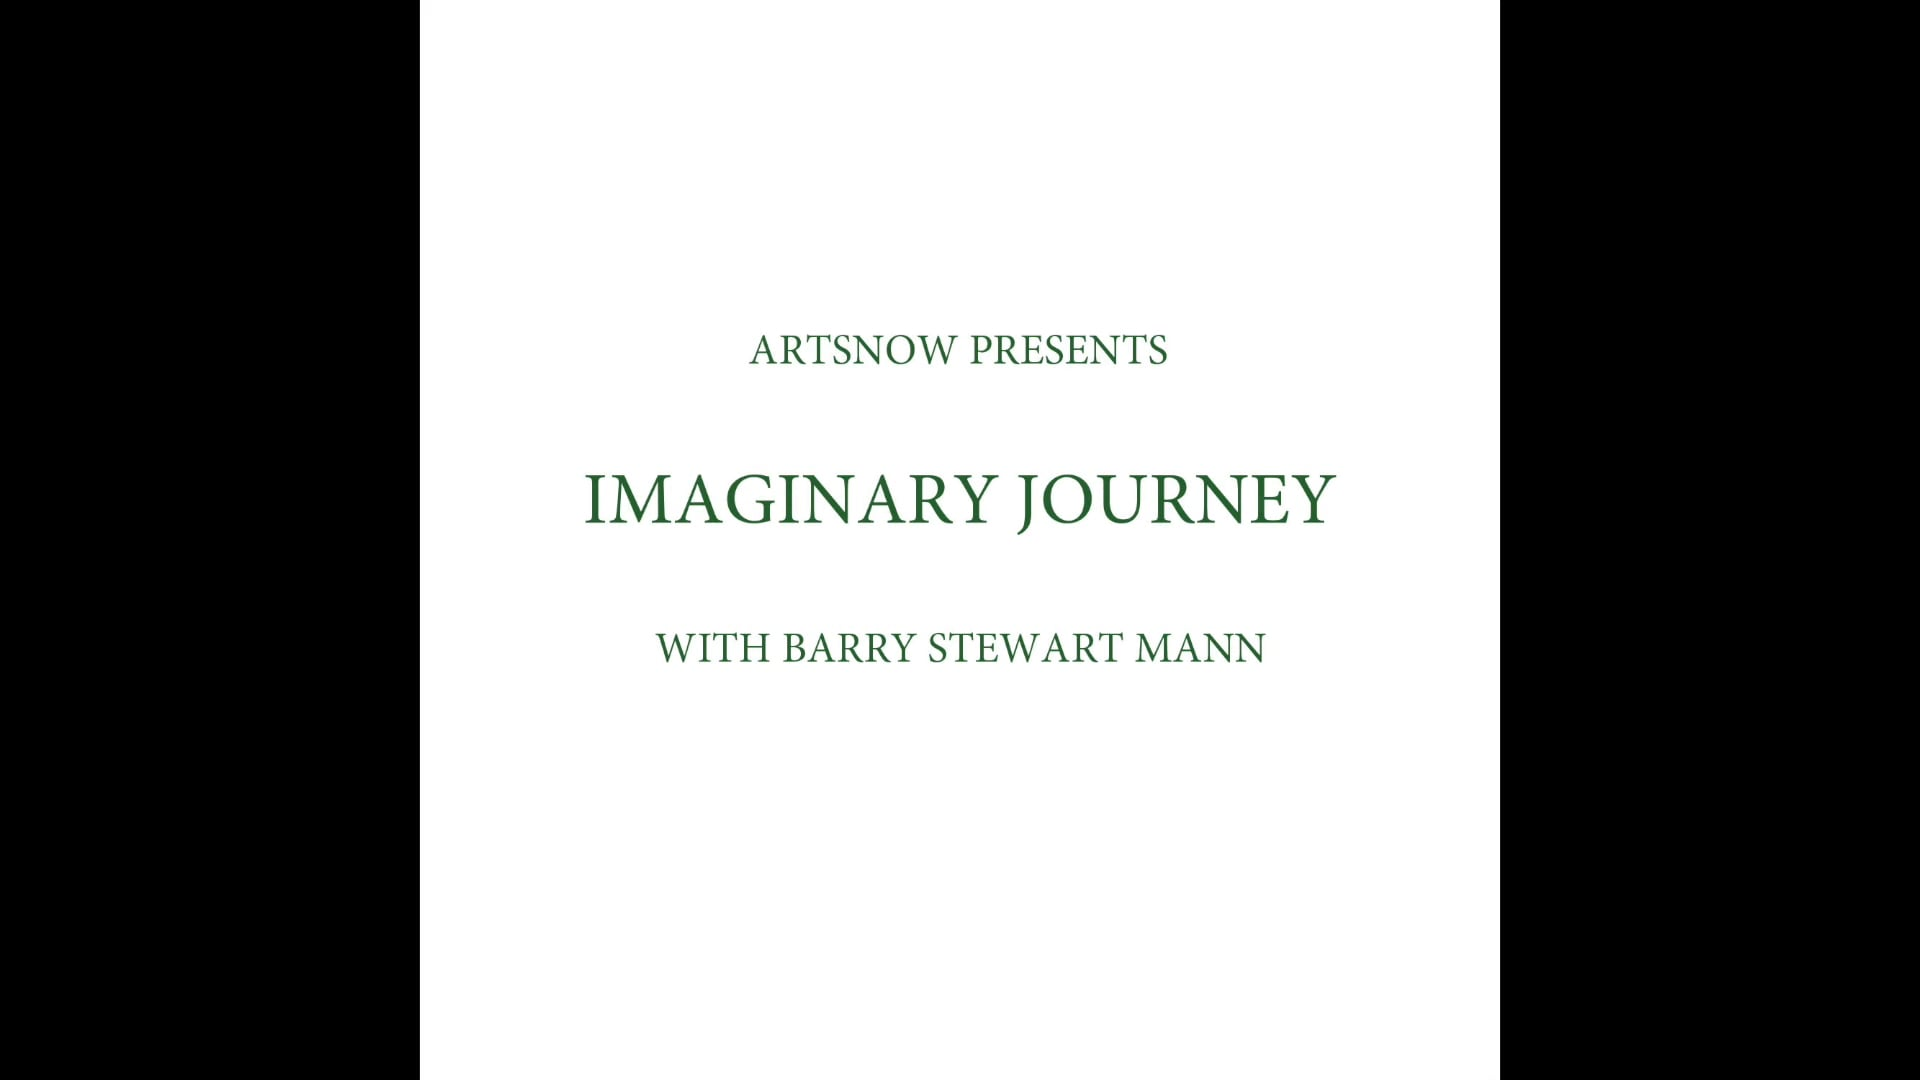 New Digital Ideas: Imaginary Journey